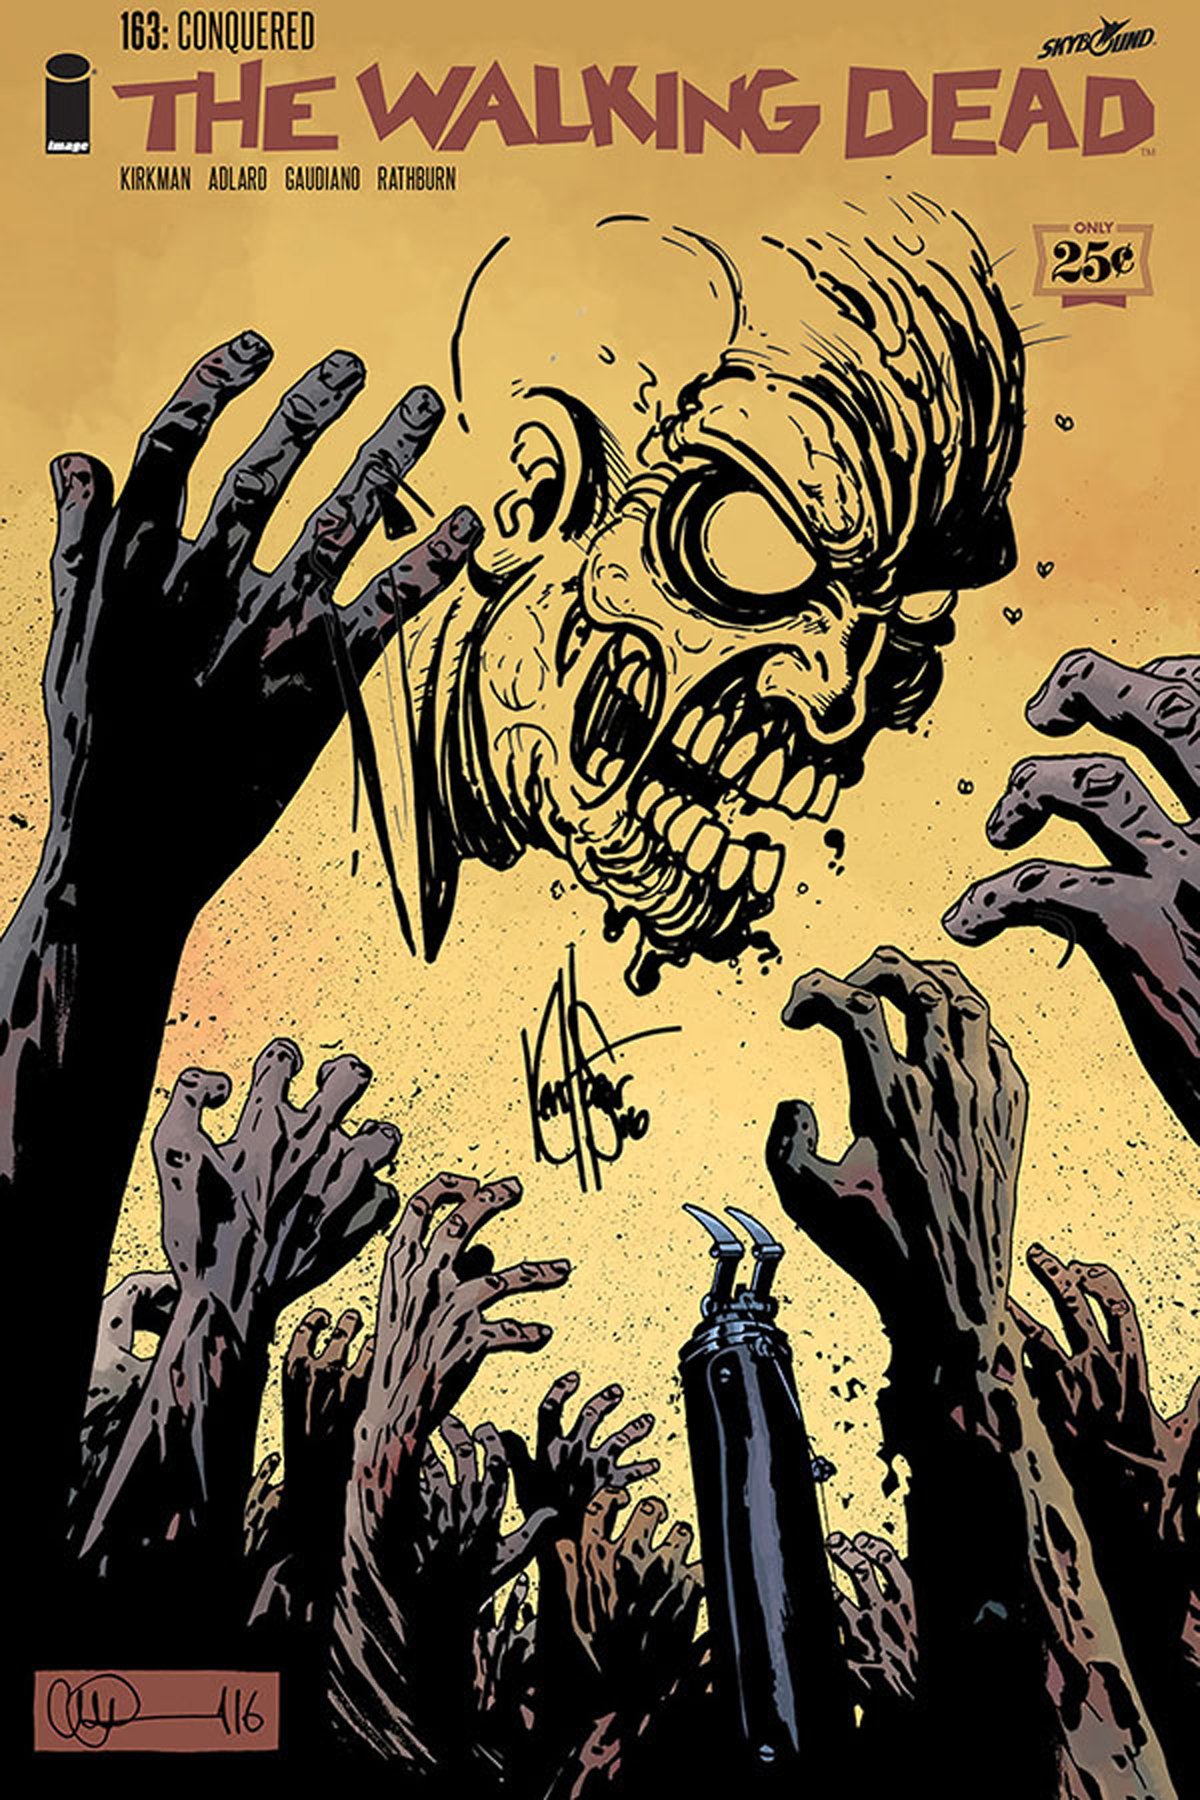 DF WALKING DEAD #163 ZOMBIE SKETCH HAESER SGN